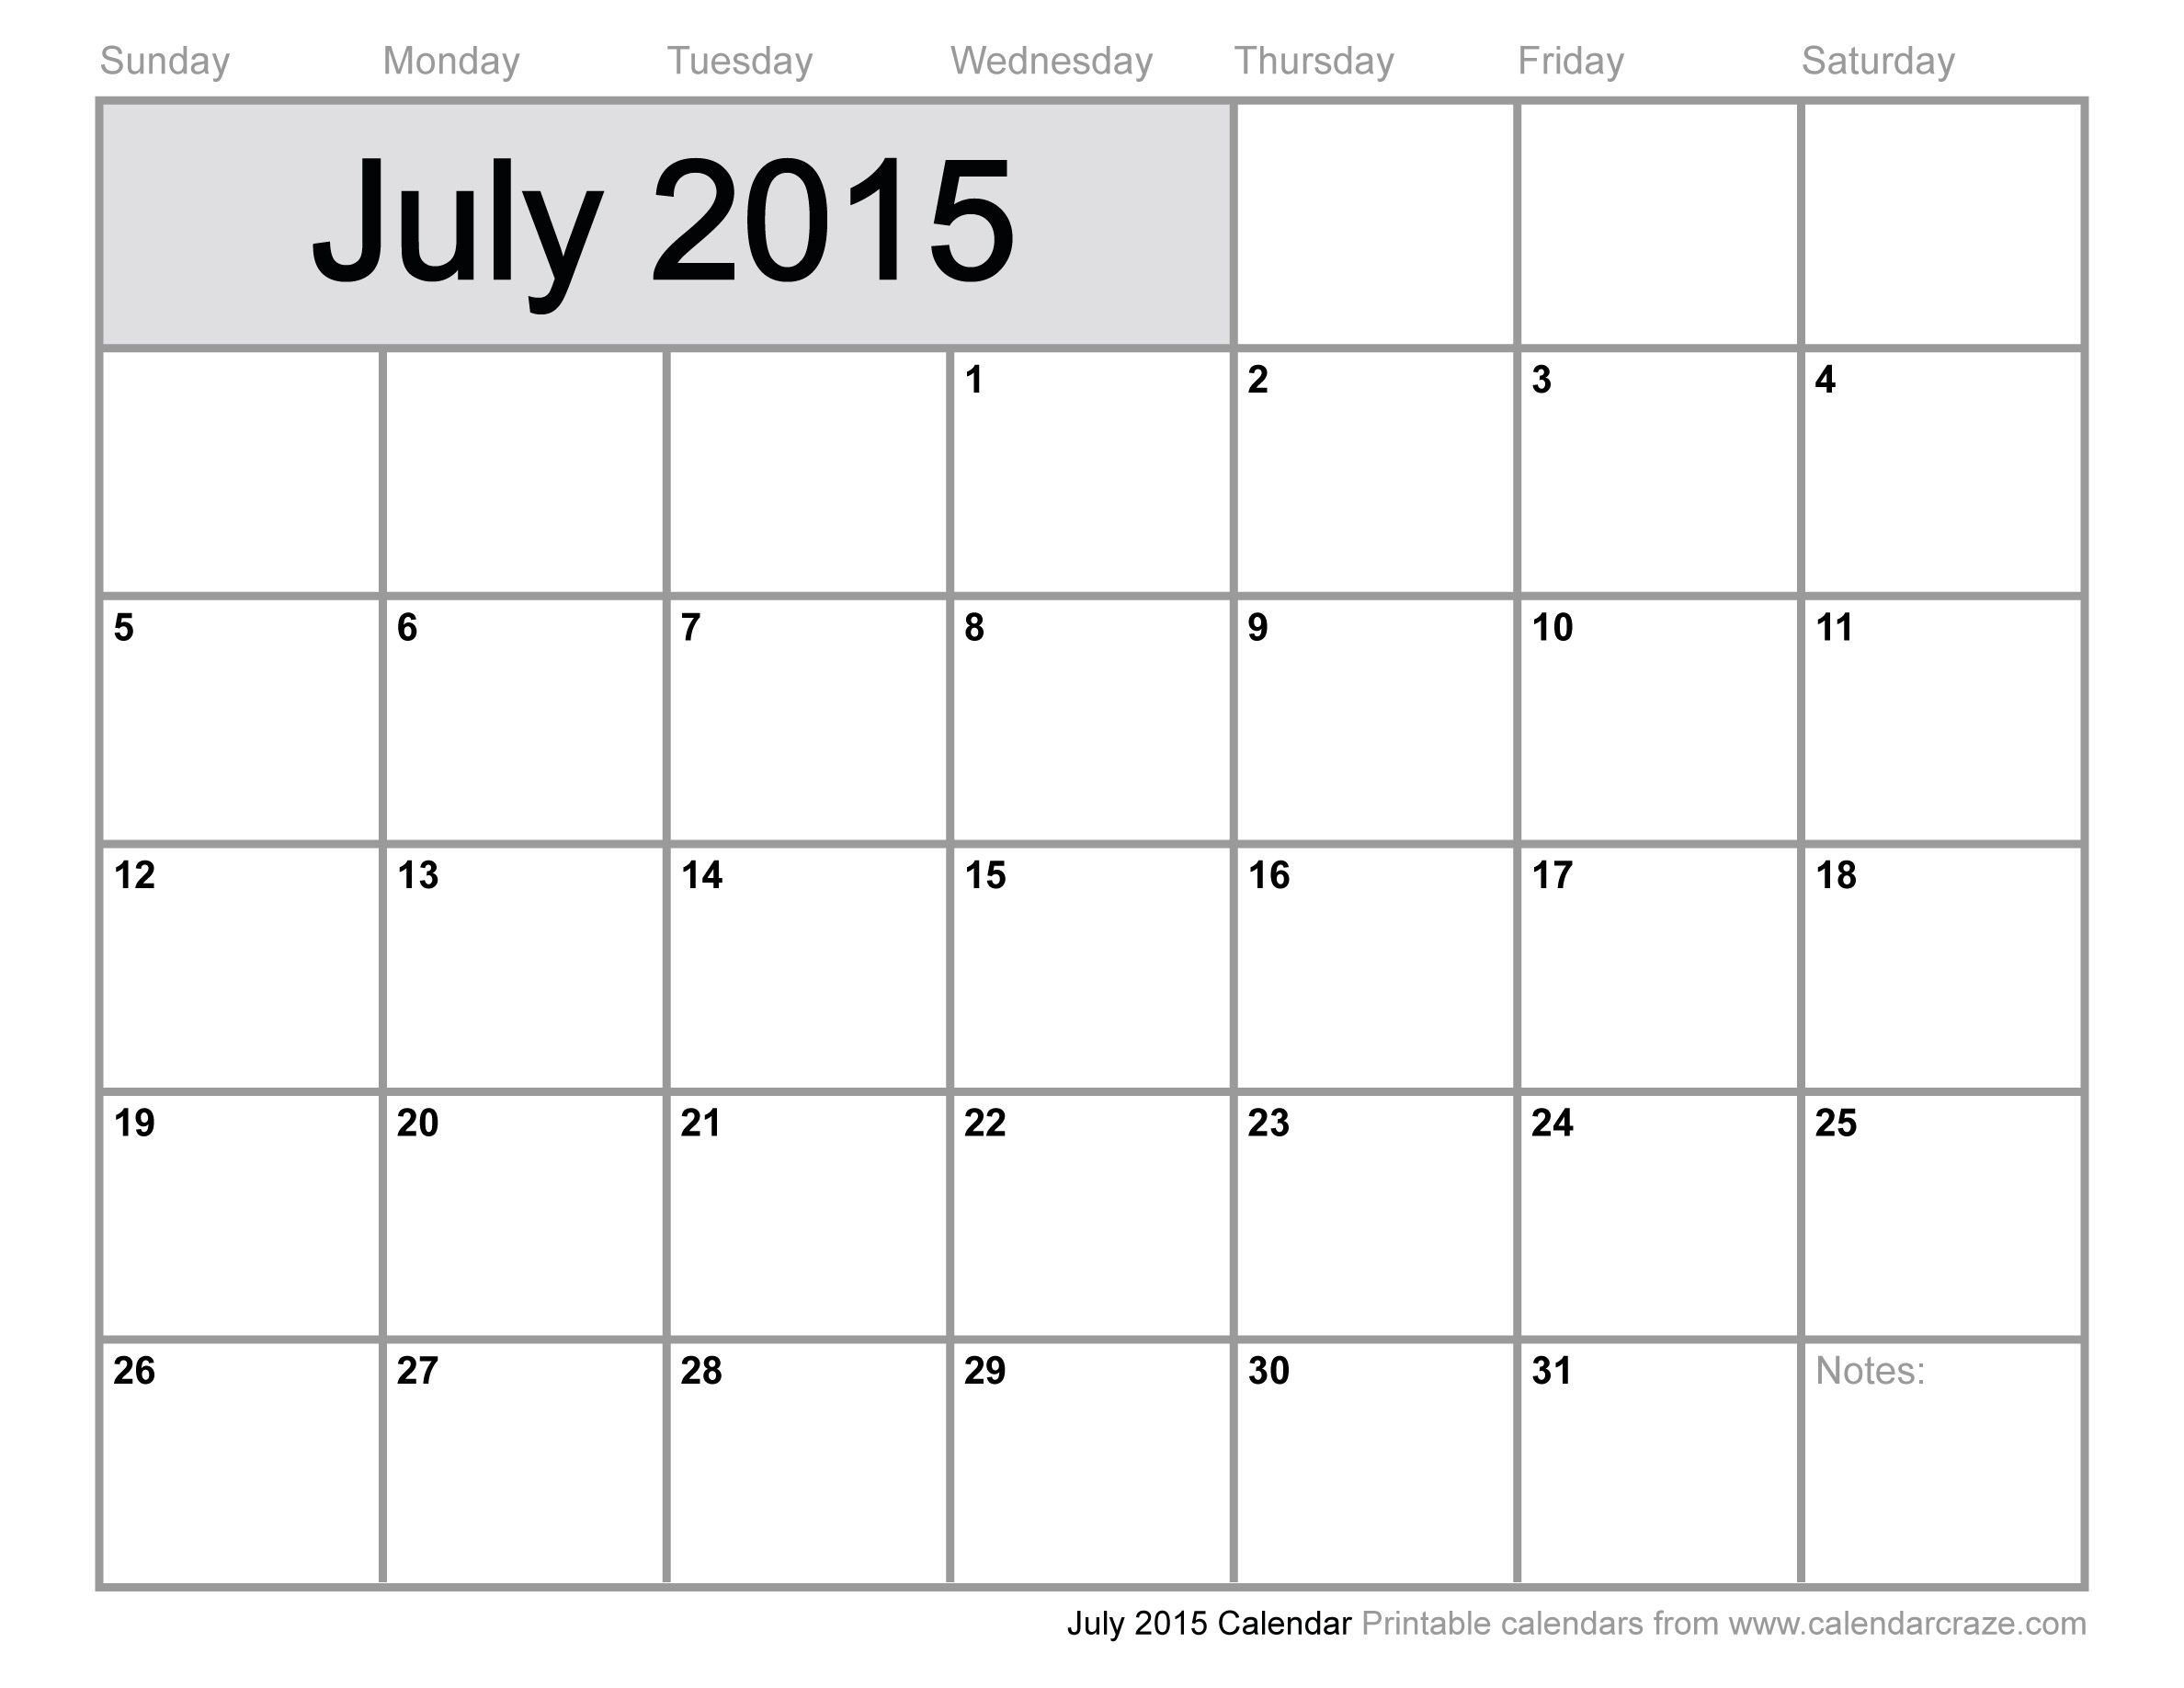 July 2015 Calendar Free Download - Get an exclusive collection of ...